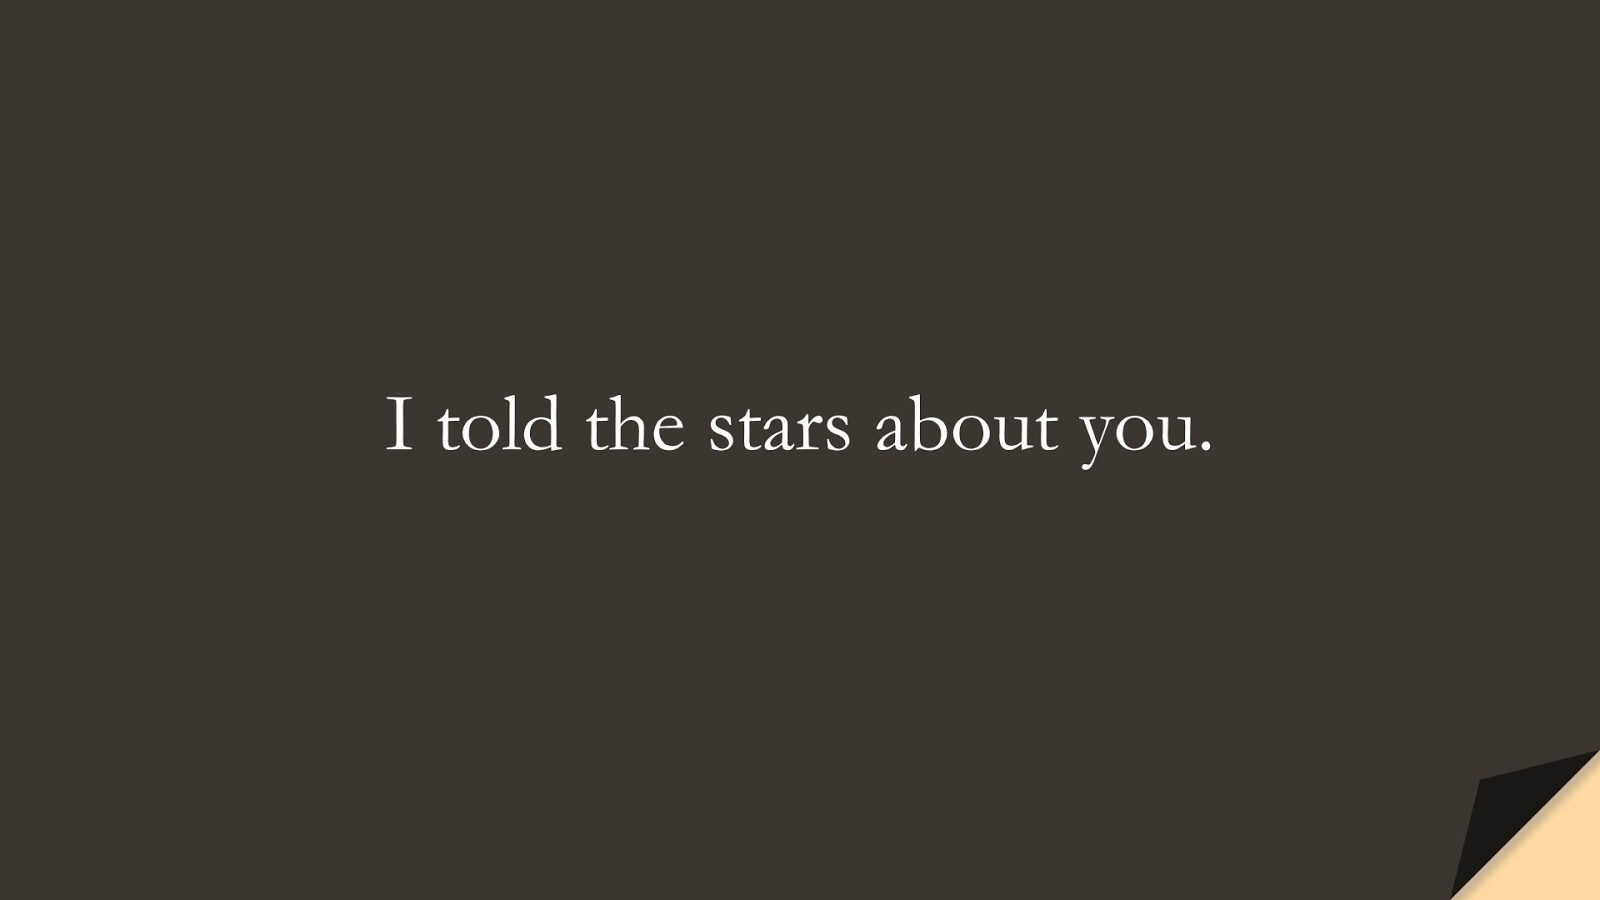 I told the stars about you.FALSE